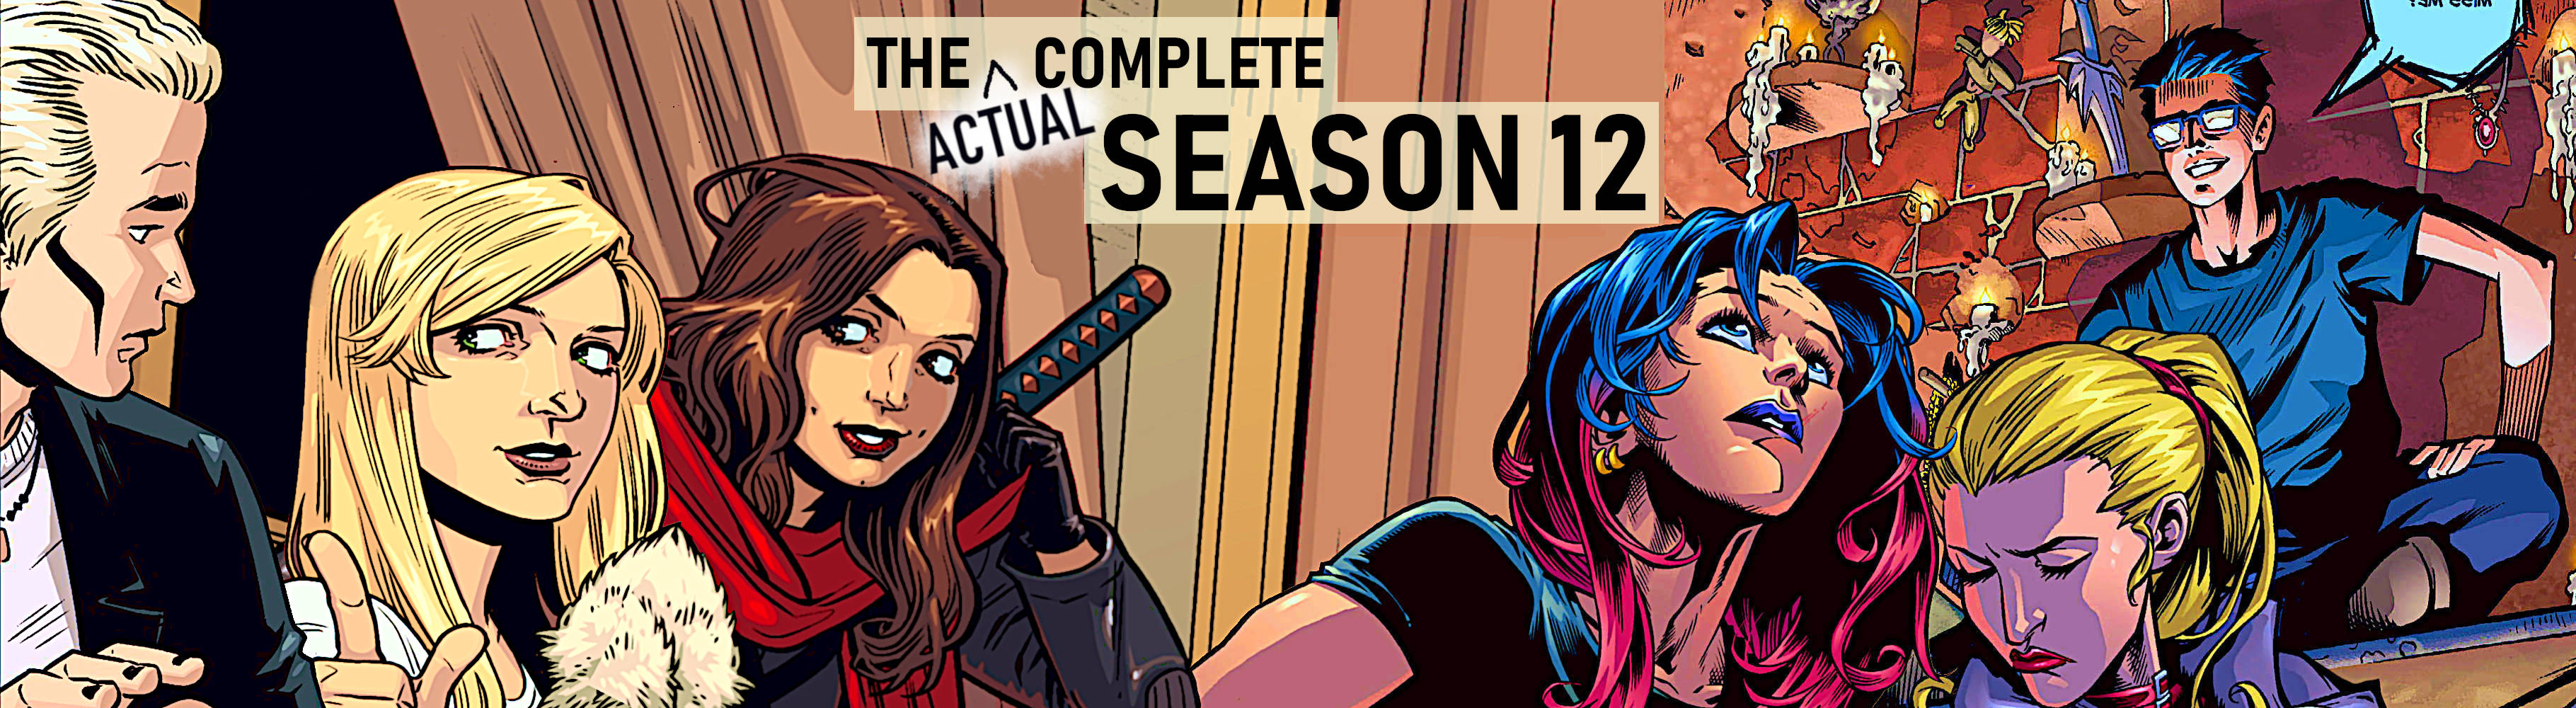 The (actual) Complete Season 12